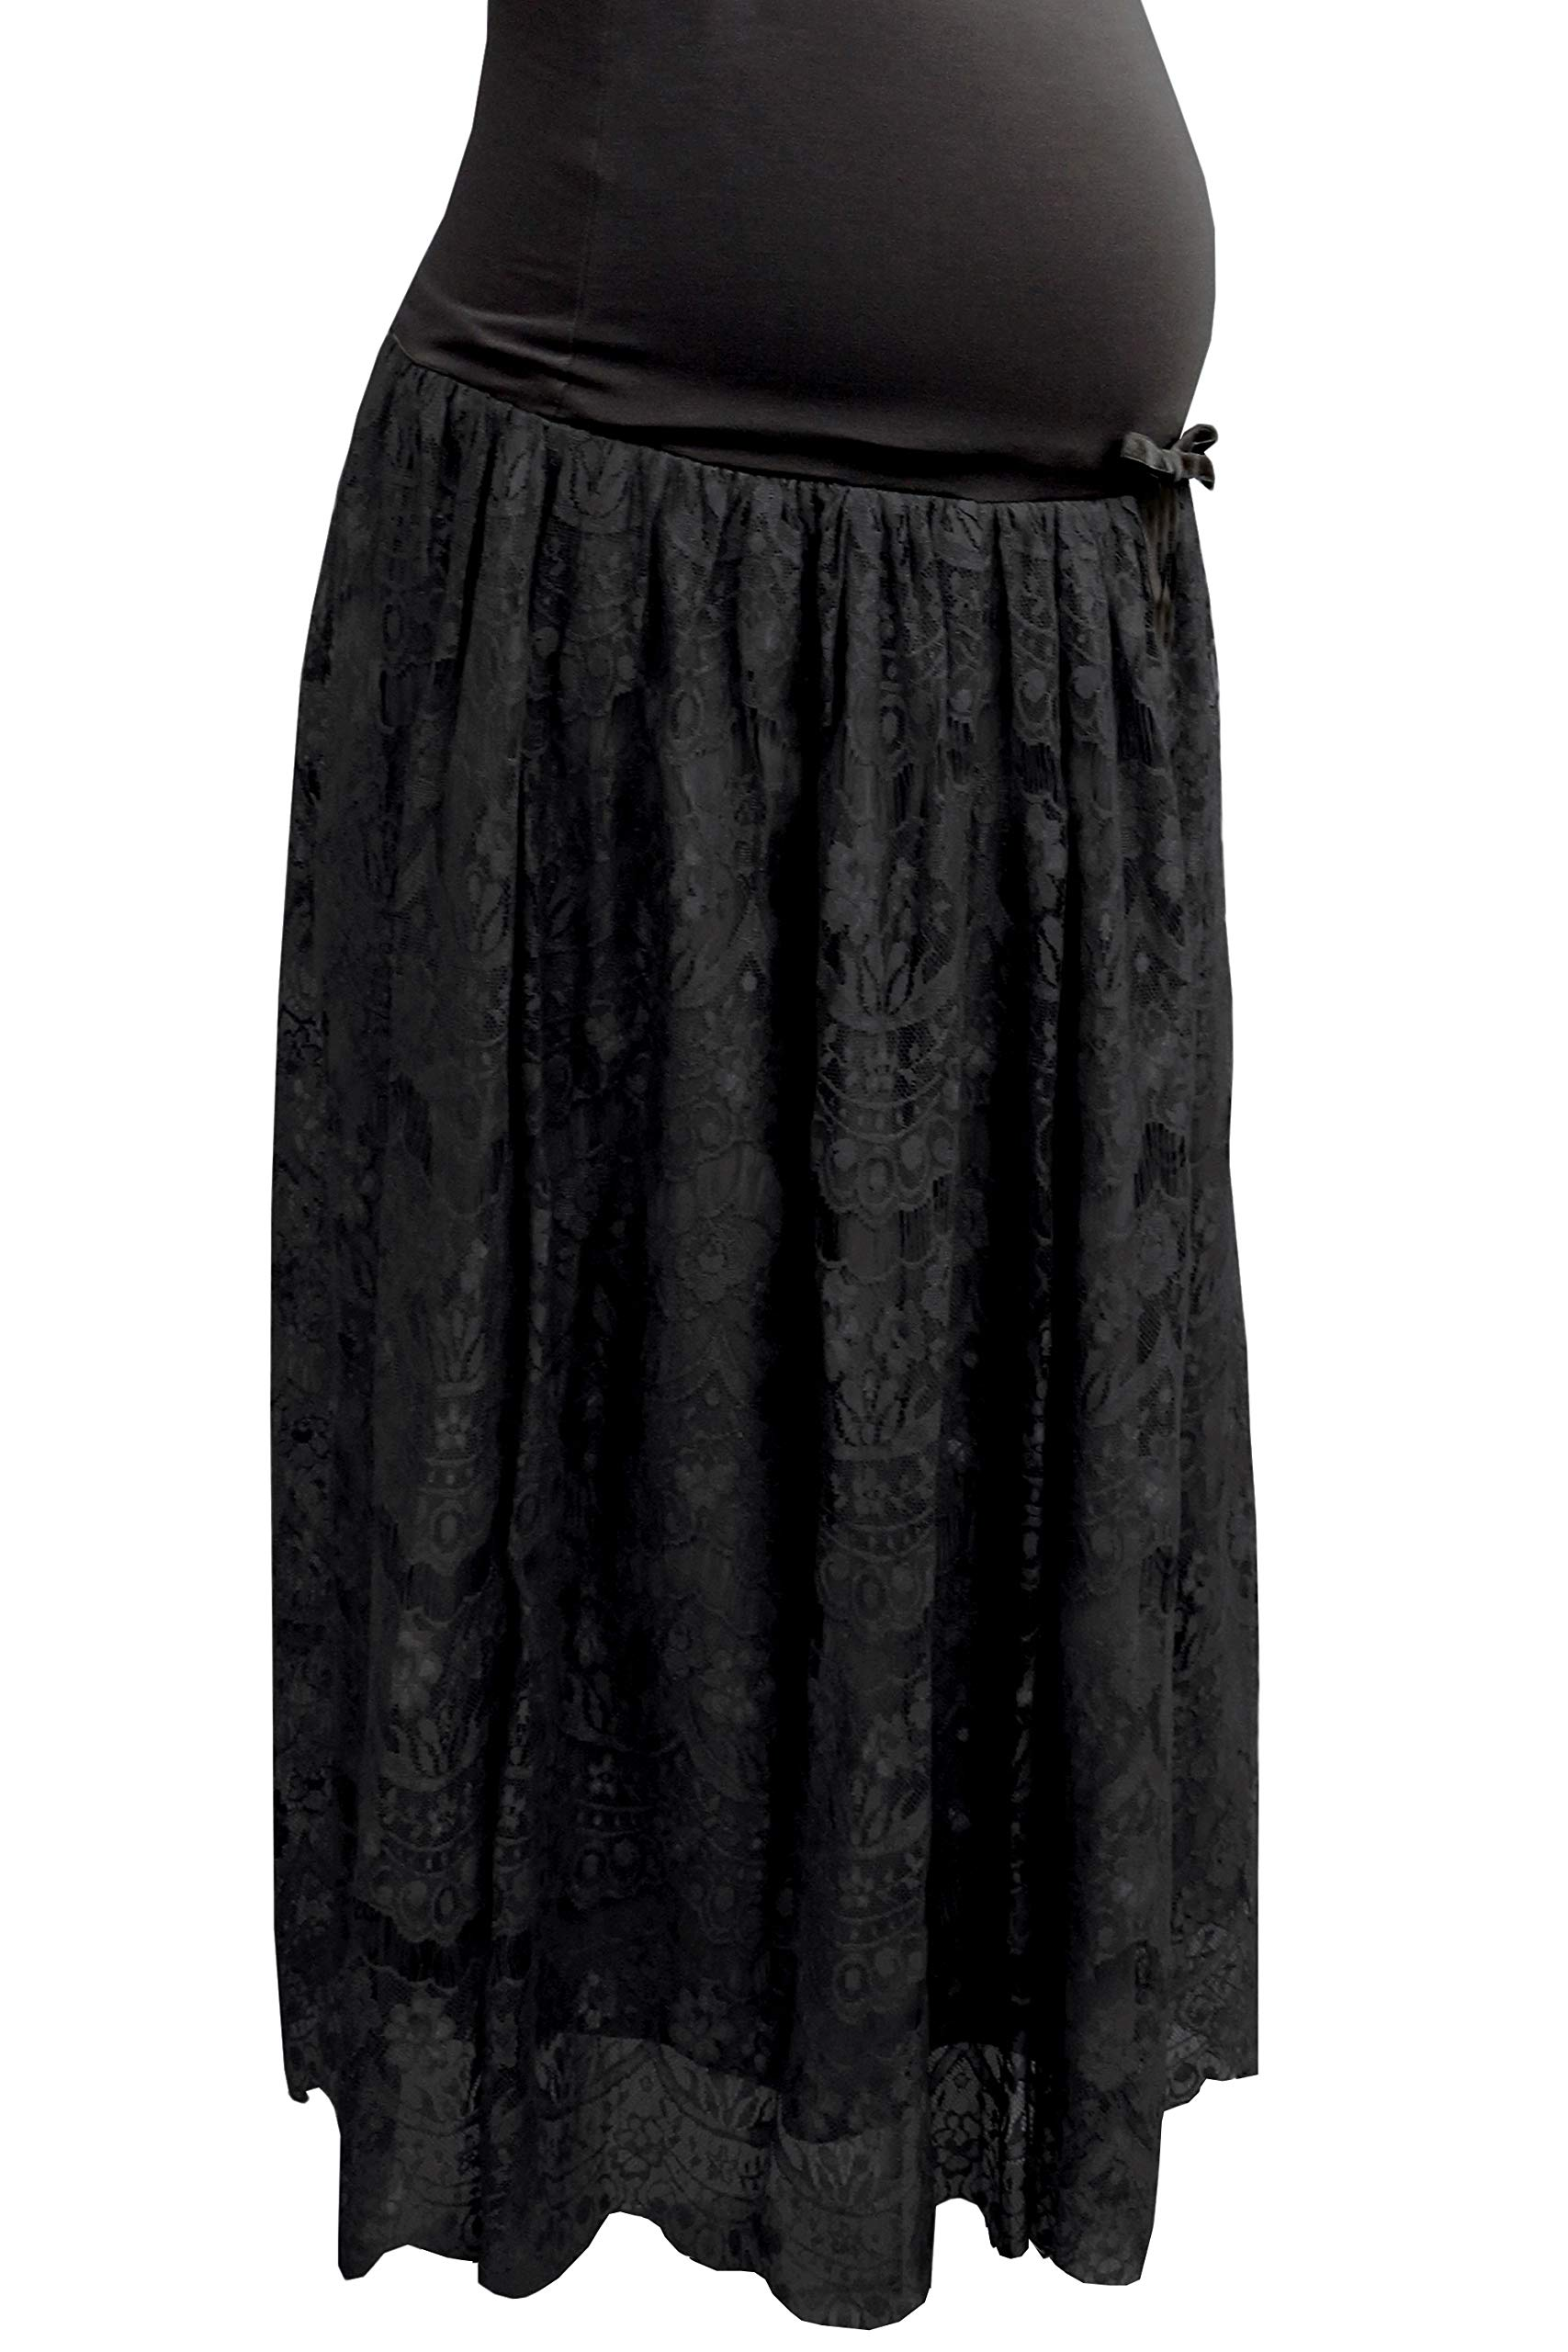 Sweet Mommy Maternity and Post-Partum Elegant Lace Maxi Skirt, Black, L by Sweet Mommy